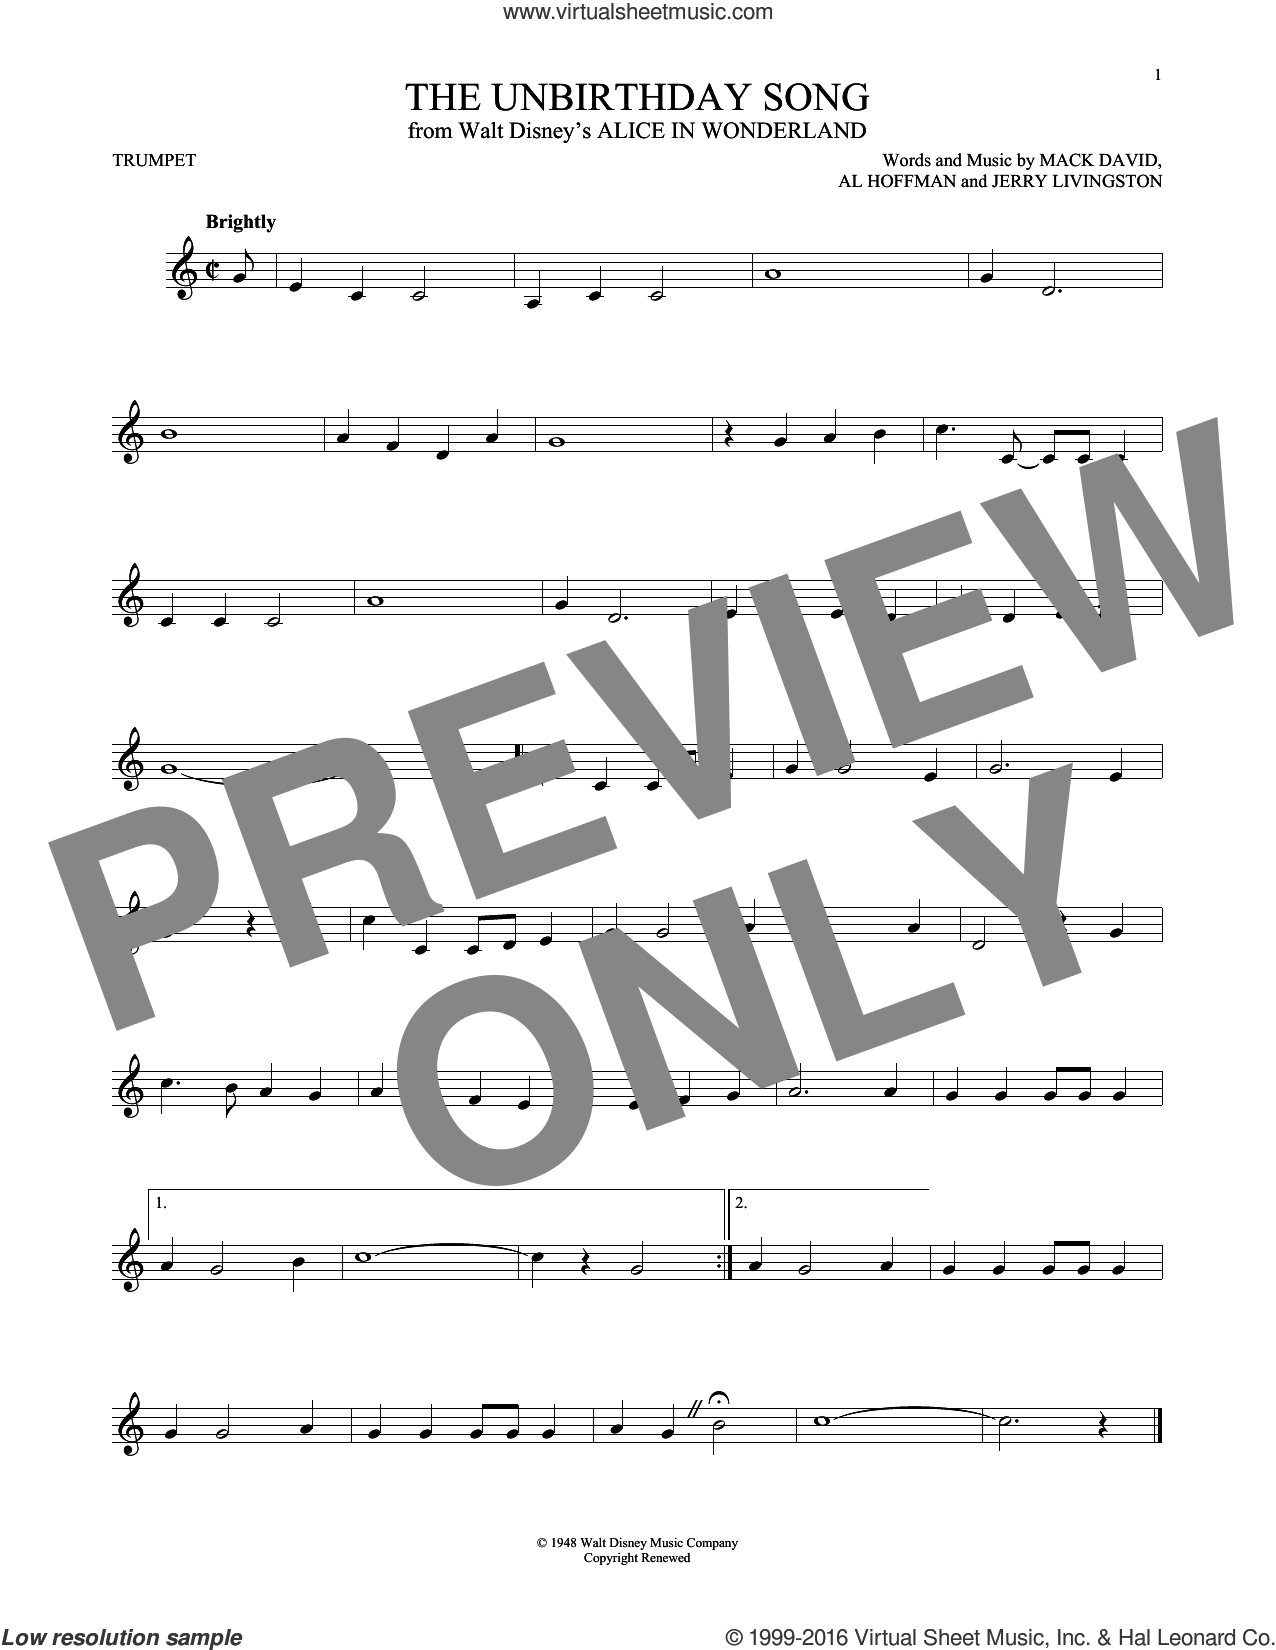 The Unbirthday Song (from Disney's Alice In Wonderland) sheet music for trumpet solo by Al Hoffman, Jerry Livingston, Mack David and Mack David, Al Hoffman and Jerry Livingston, intermediate skill level